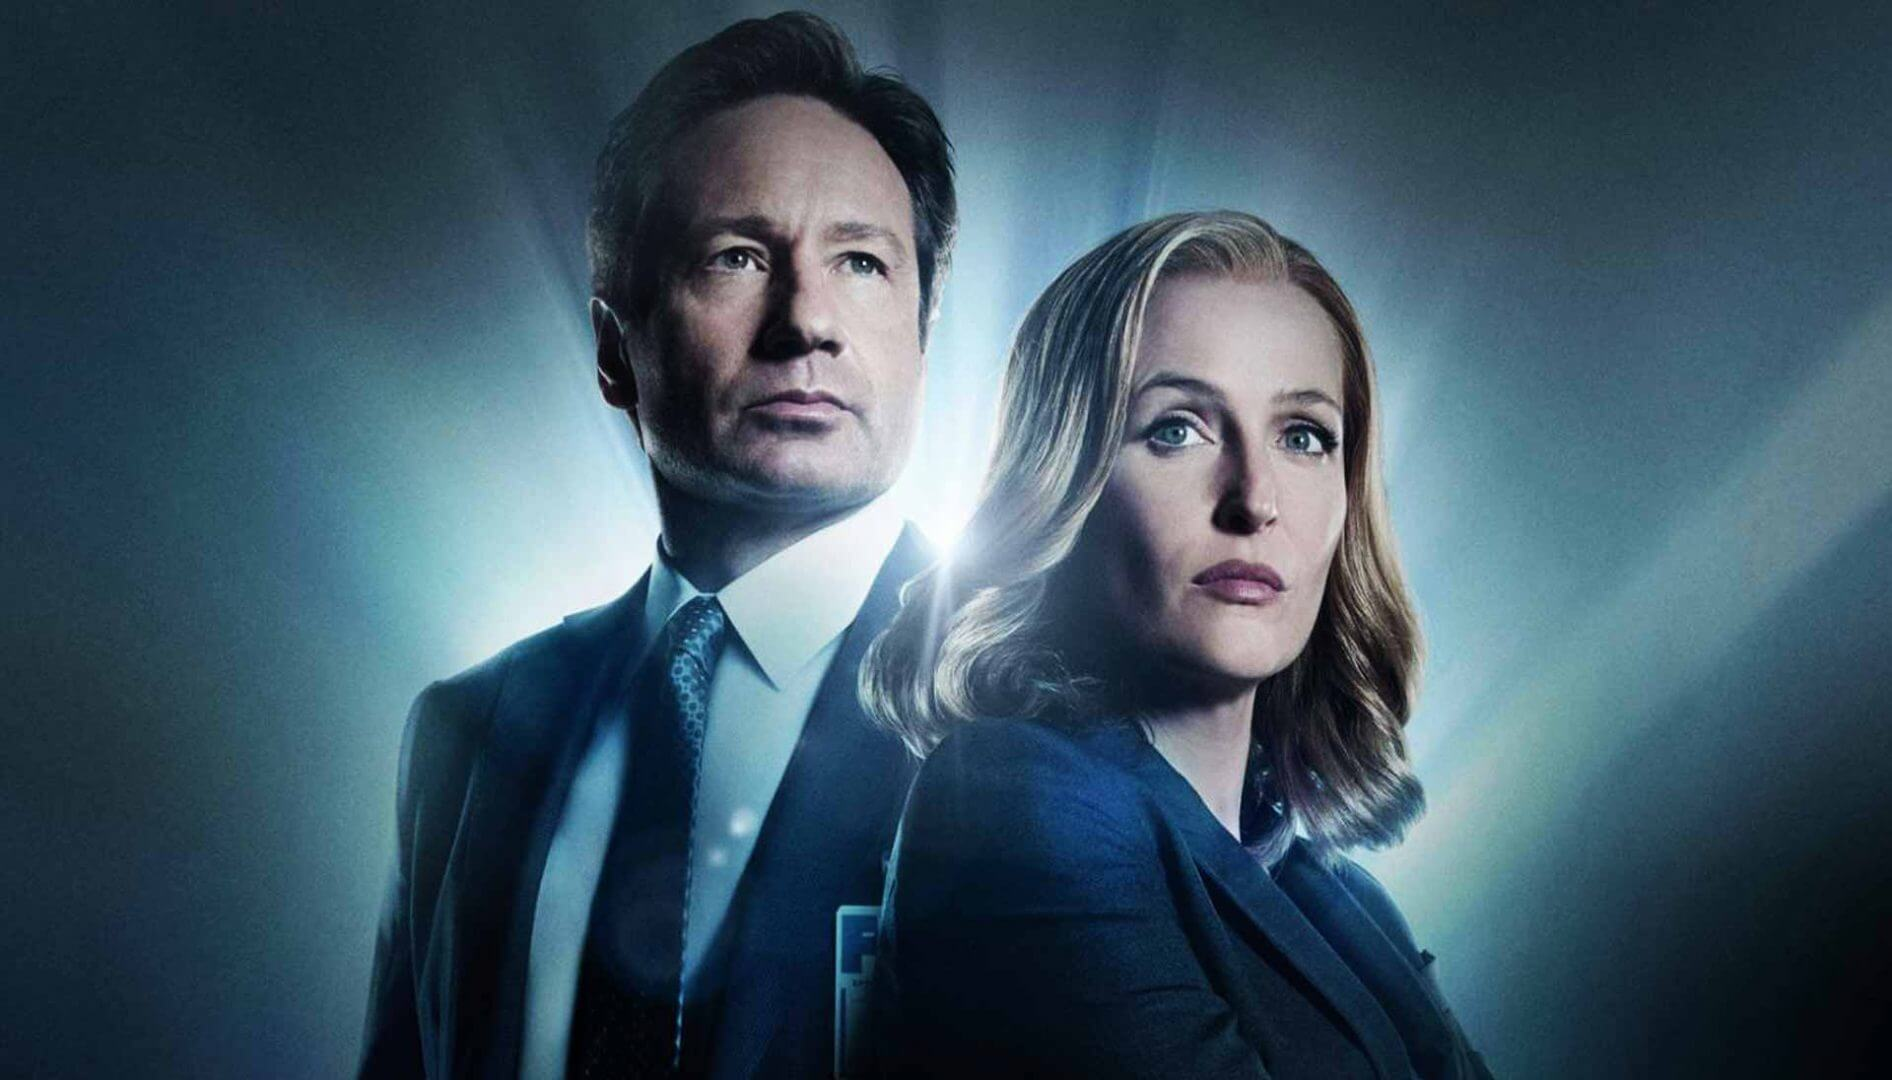 X-Files Will Get Prequels - In Novel Form